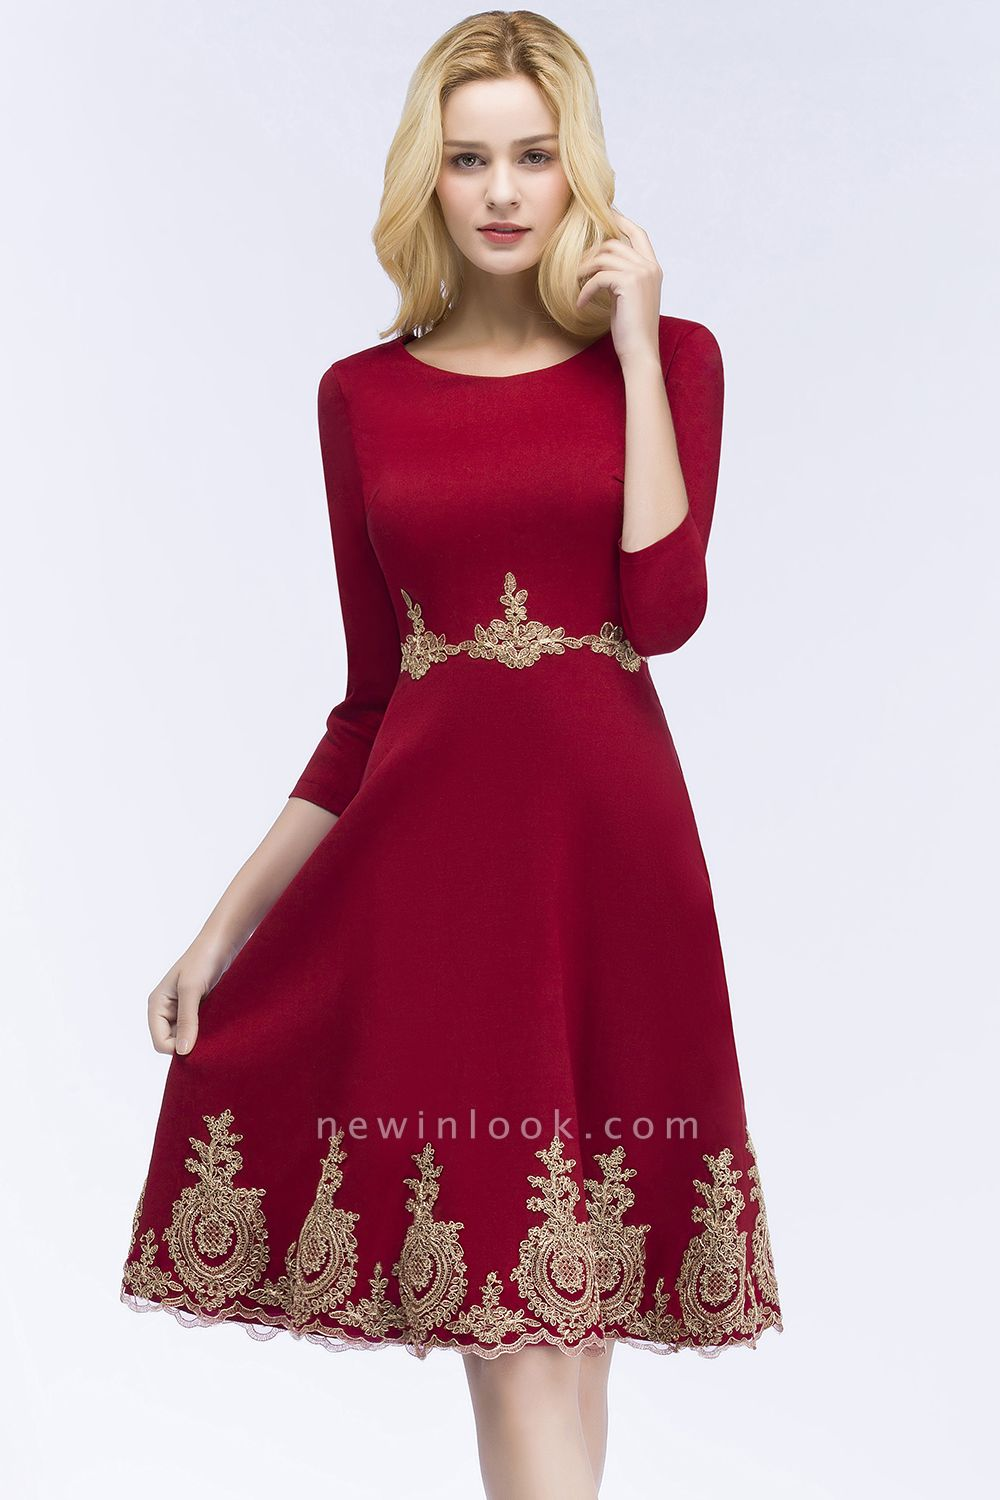 ROSANNA | Quinceanera Knee Length Burgundy Appliques Dama Dresses with Sleeves